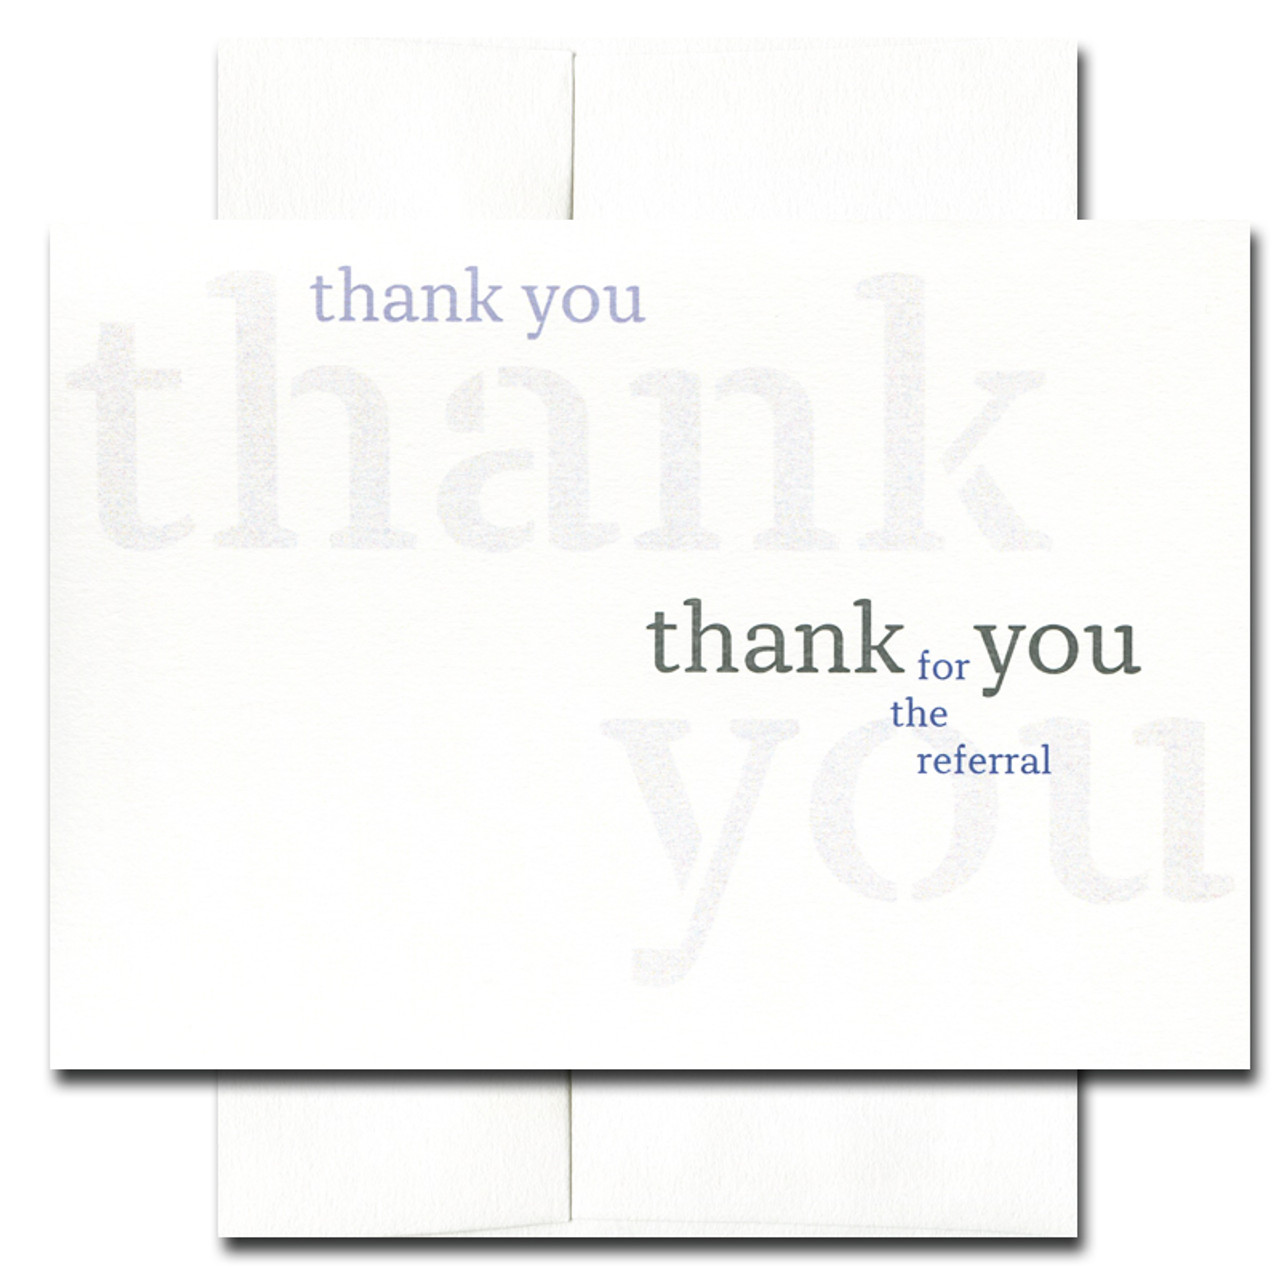 Triple Referral Thank You Card. Cover reads: thank you thank you thank you for the referral